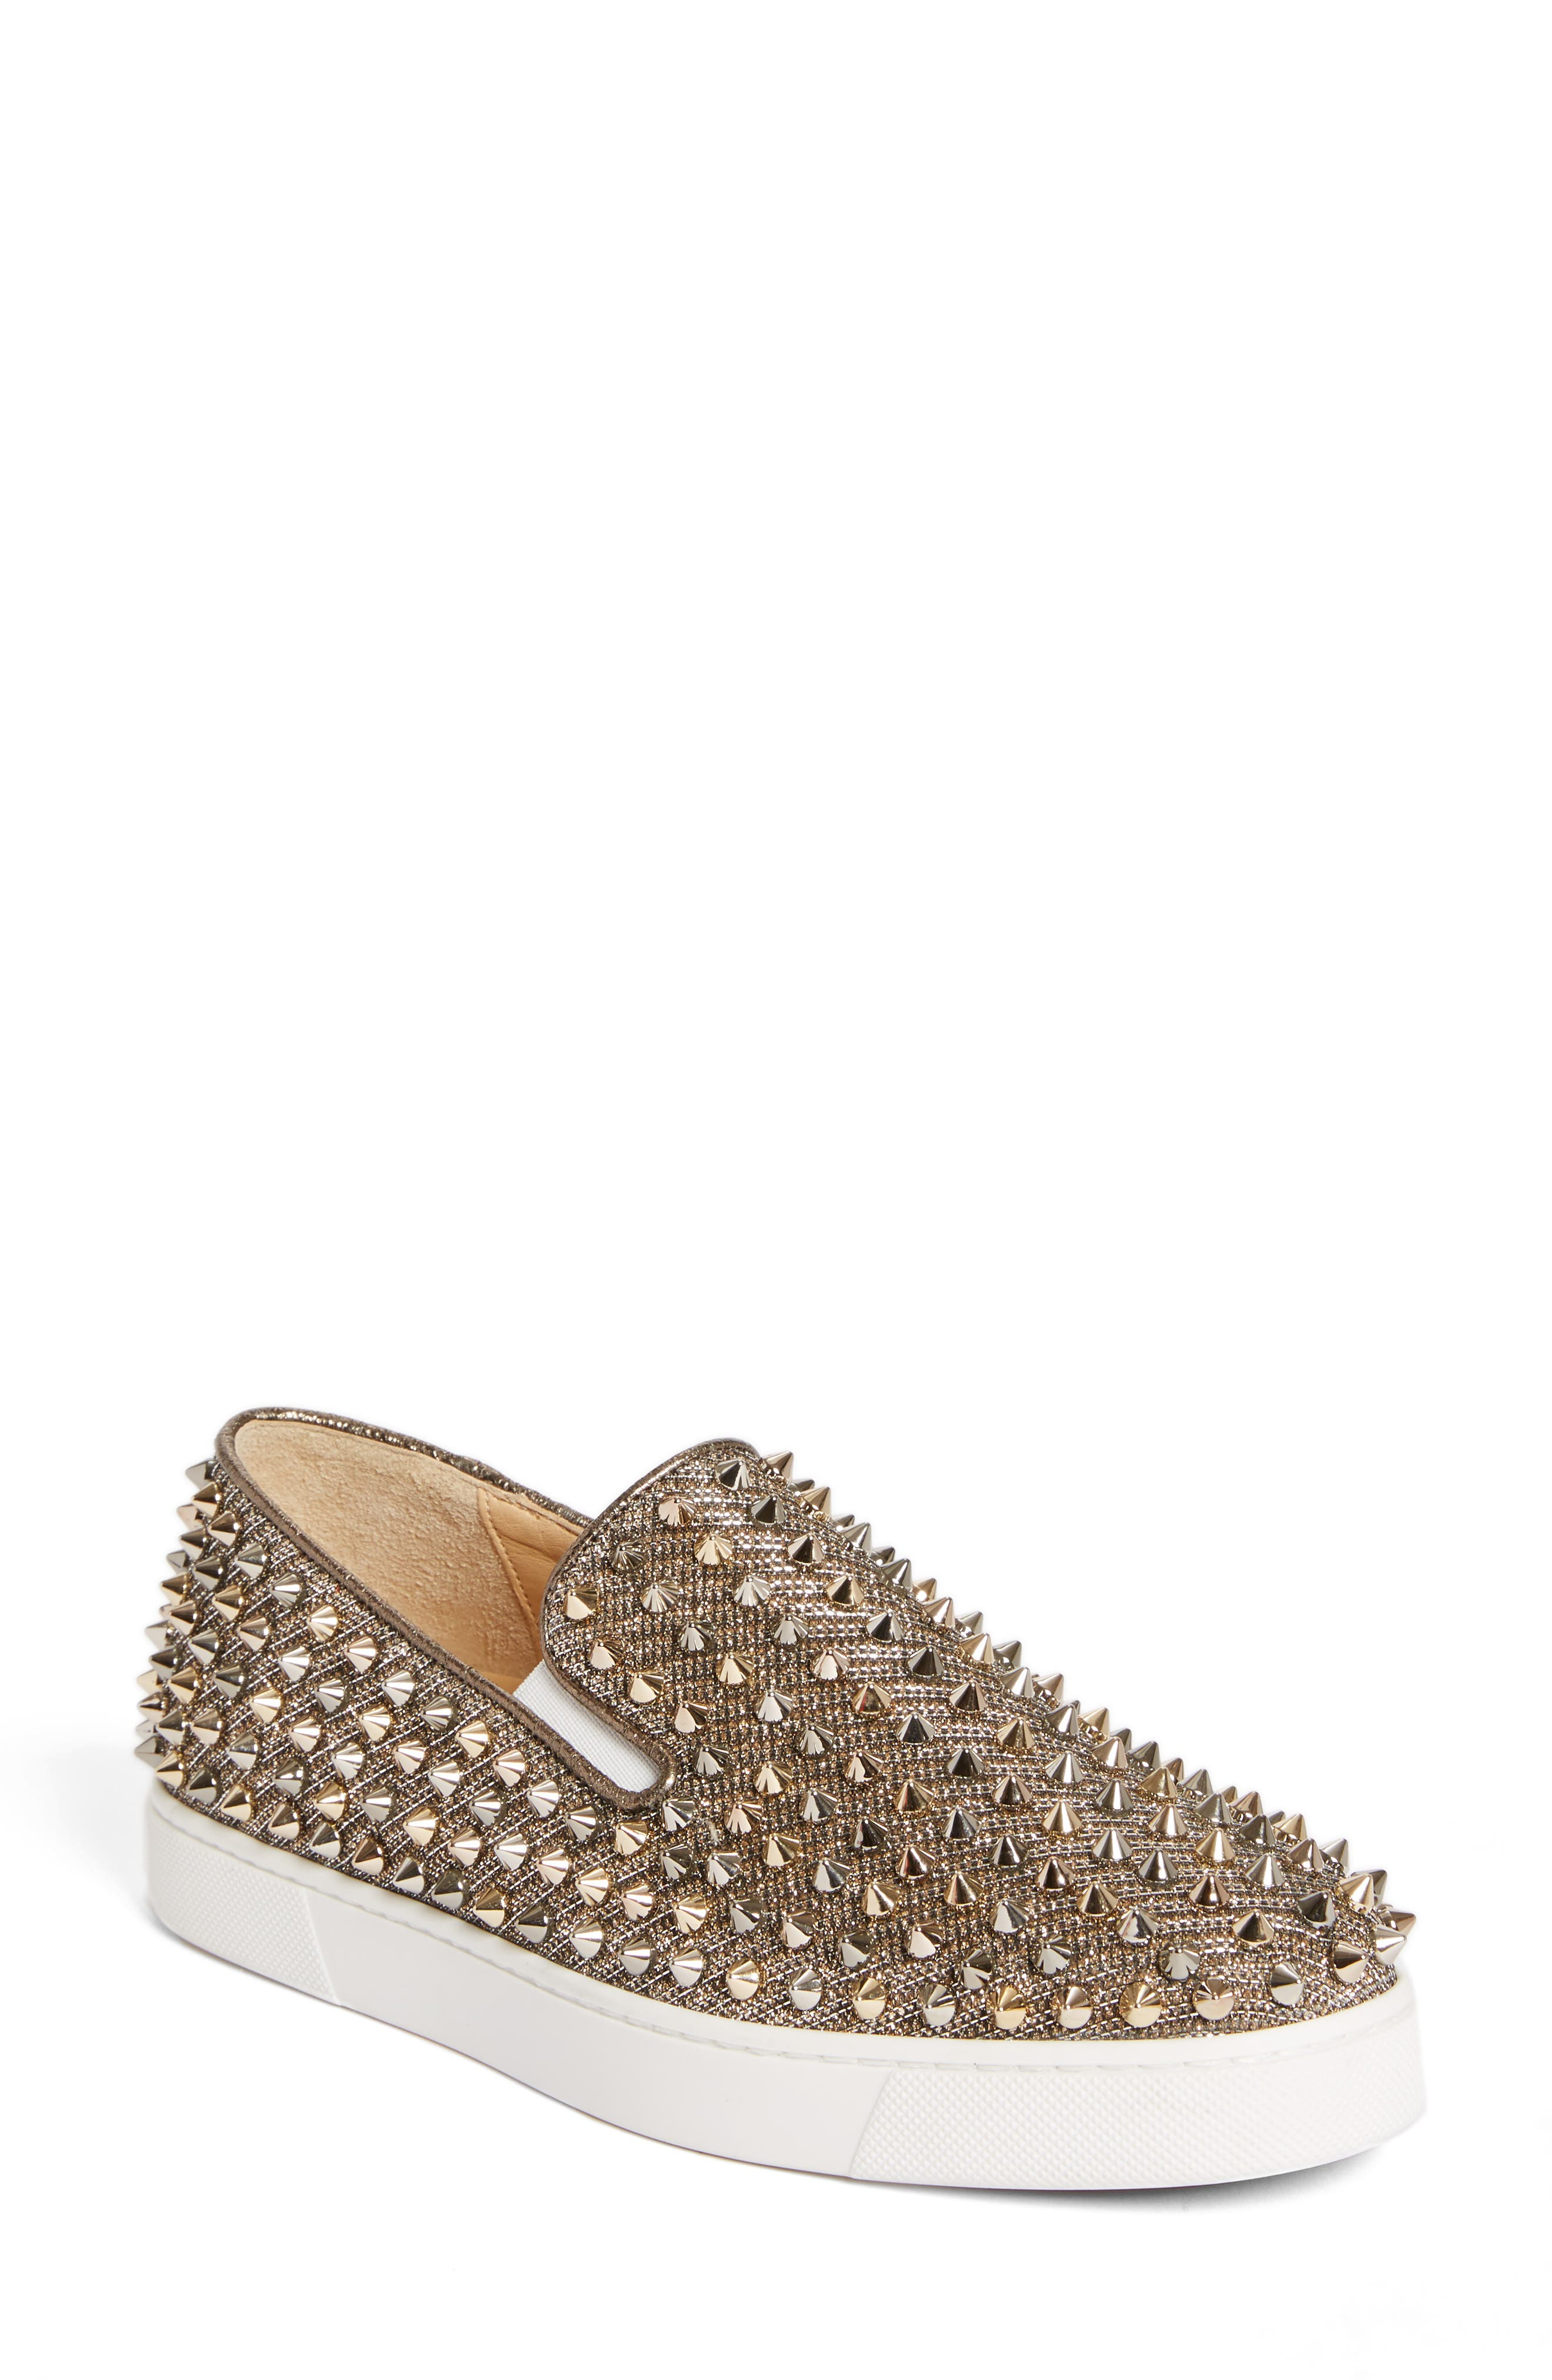 Christian Louboutin Rollerboat Slip-On Sneaker (Women)